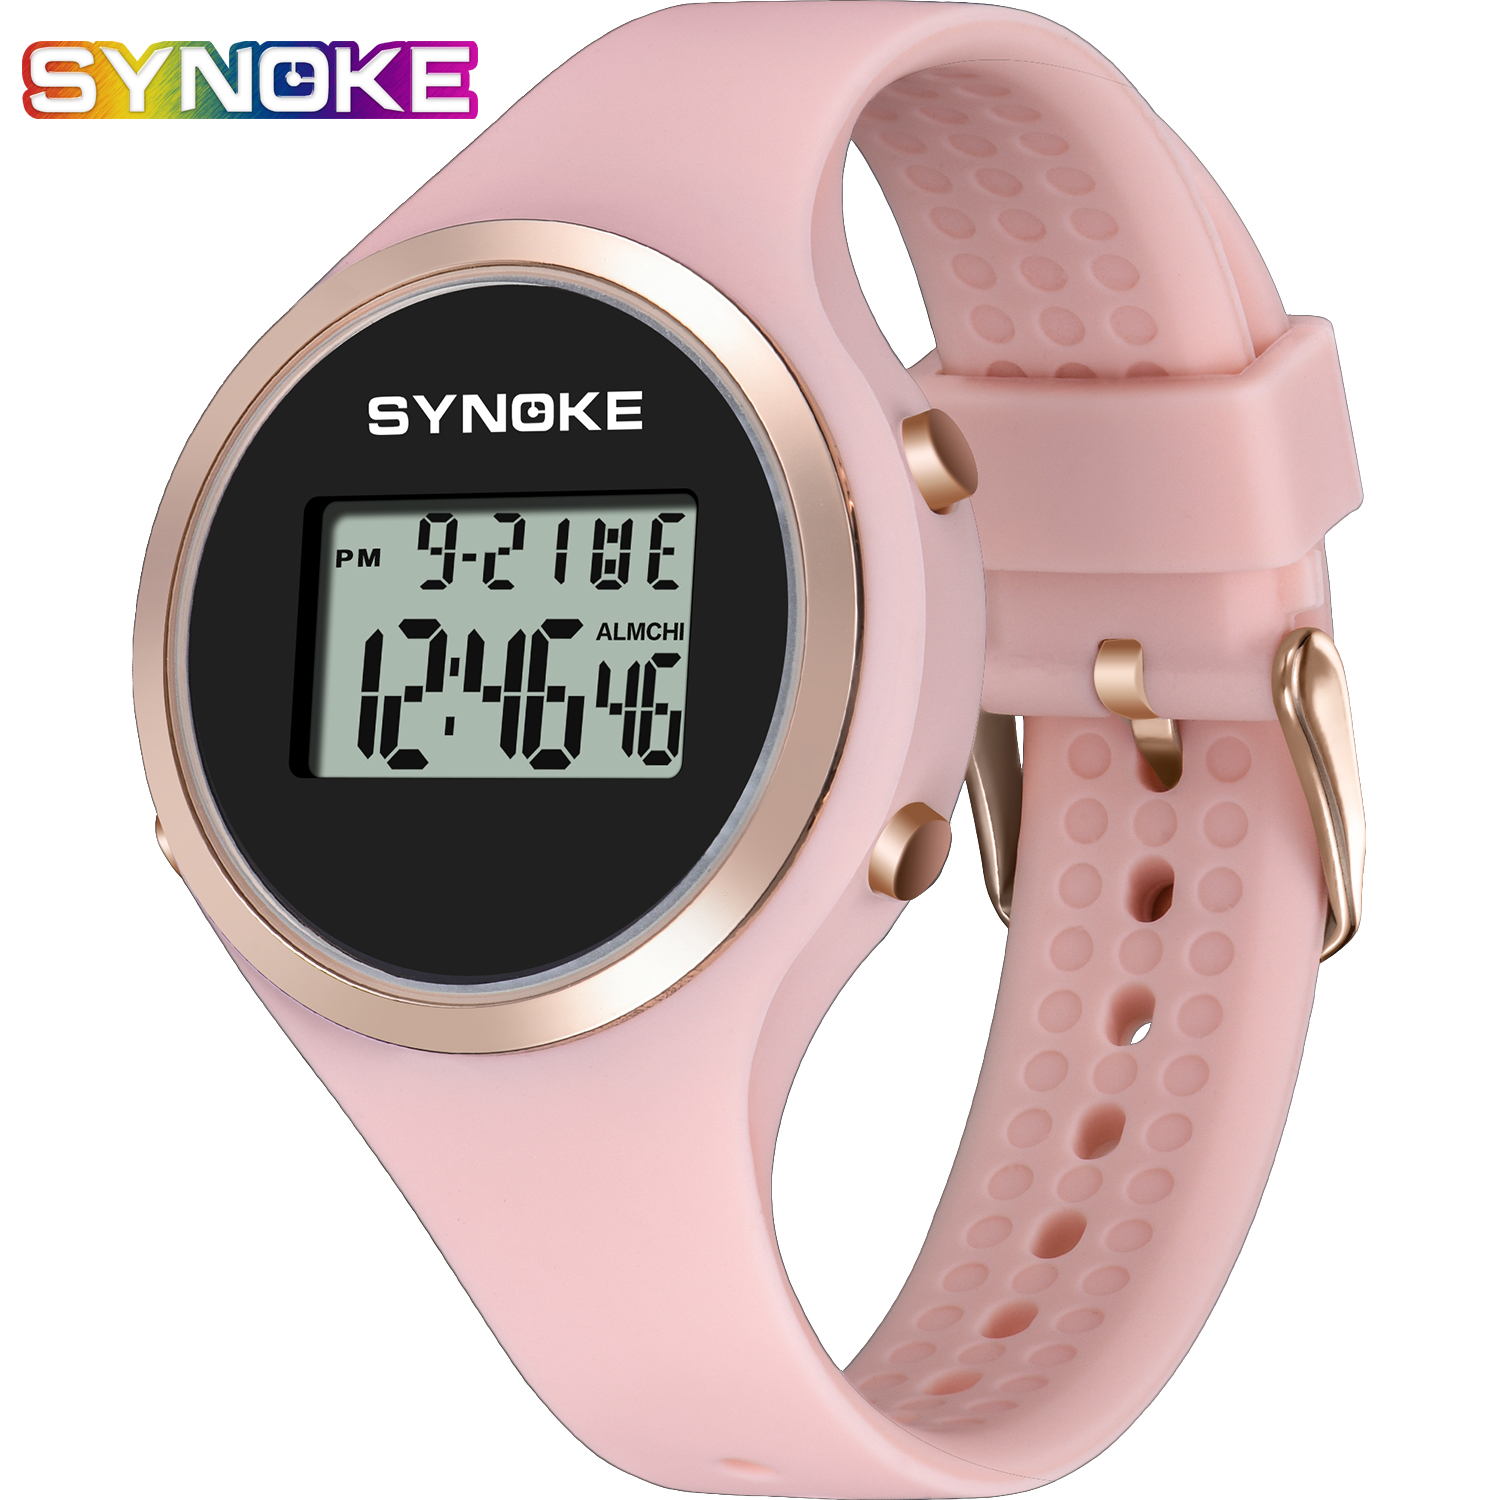 Swim Children Digital Watches Sport LED Digital Fashion Waterproof Chronograph Fitness Swimming Diving Hand Clocks Kids Watch